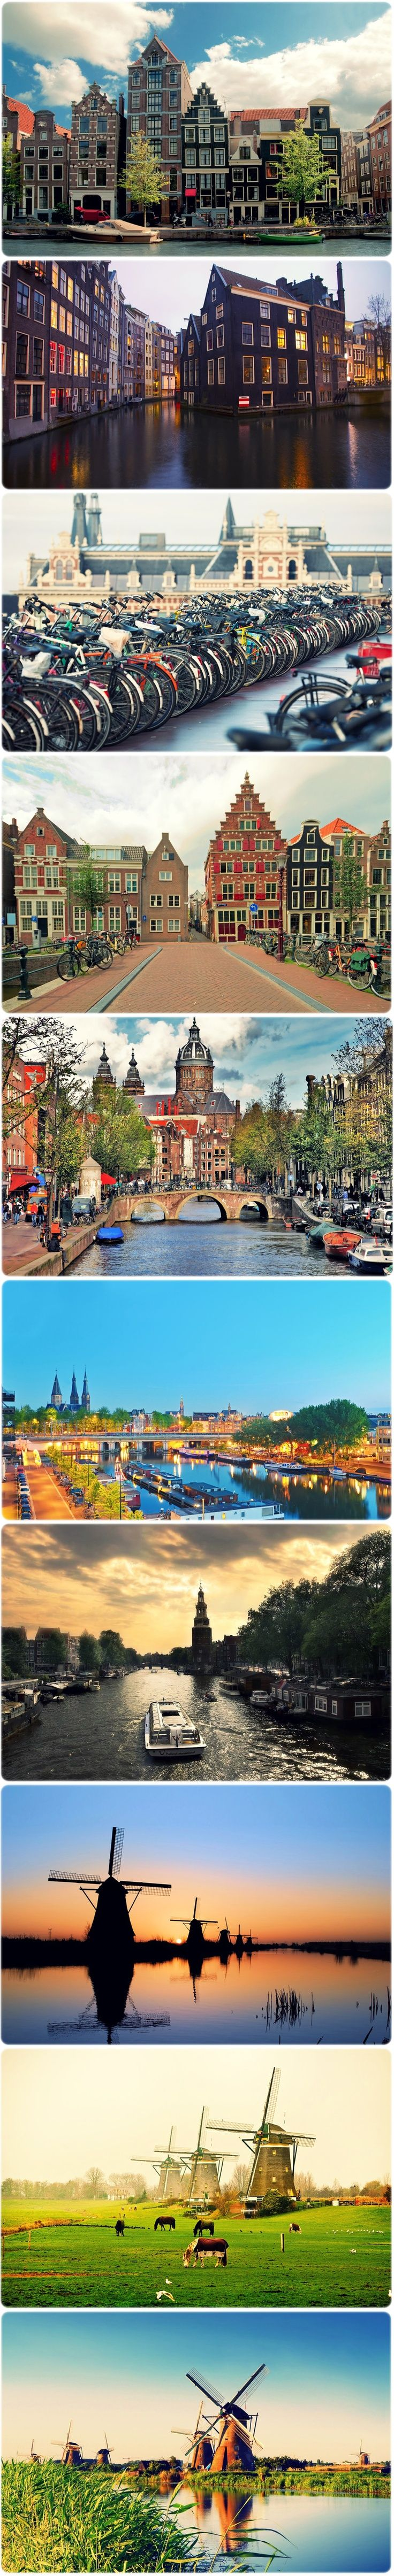 The stunning landscapes of the Netherlands studyabroad